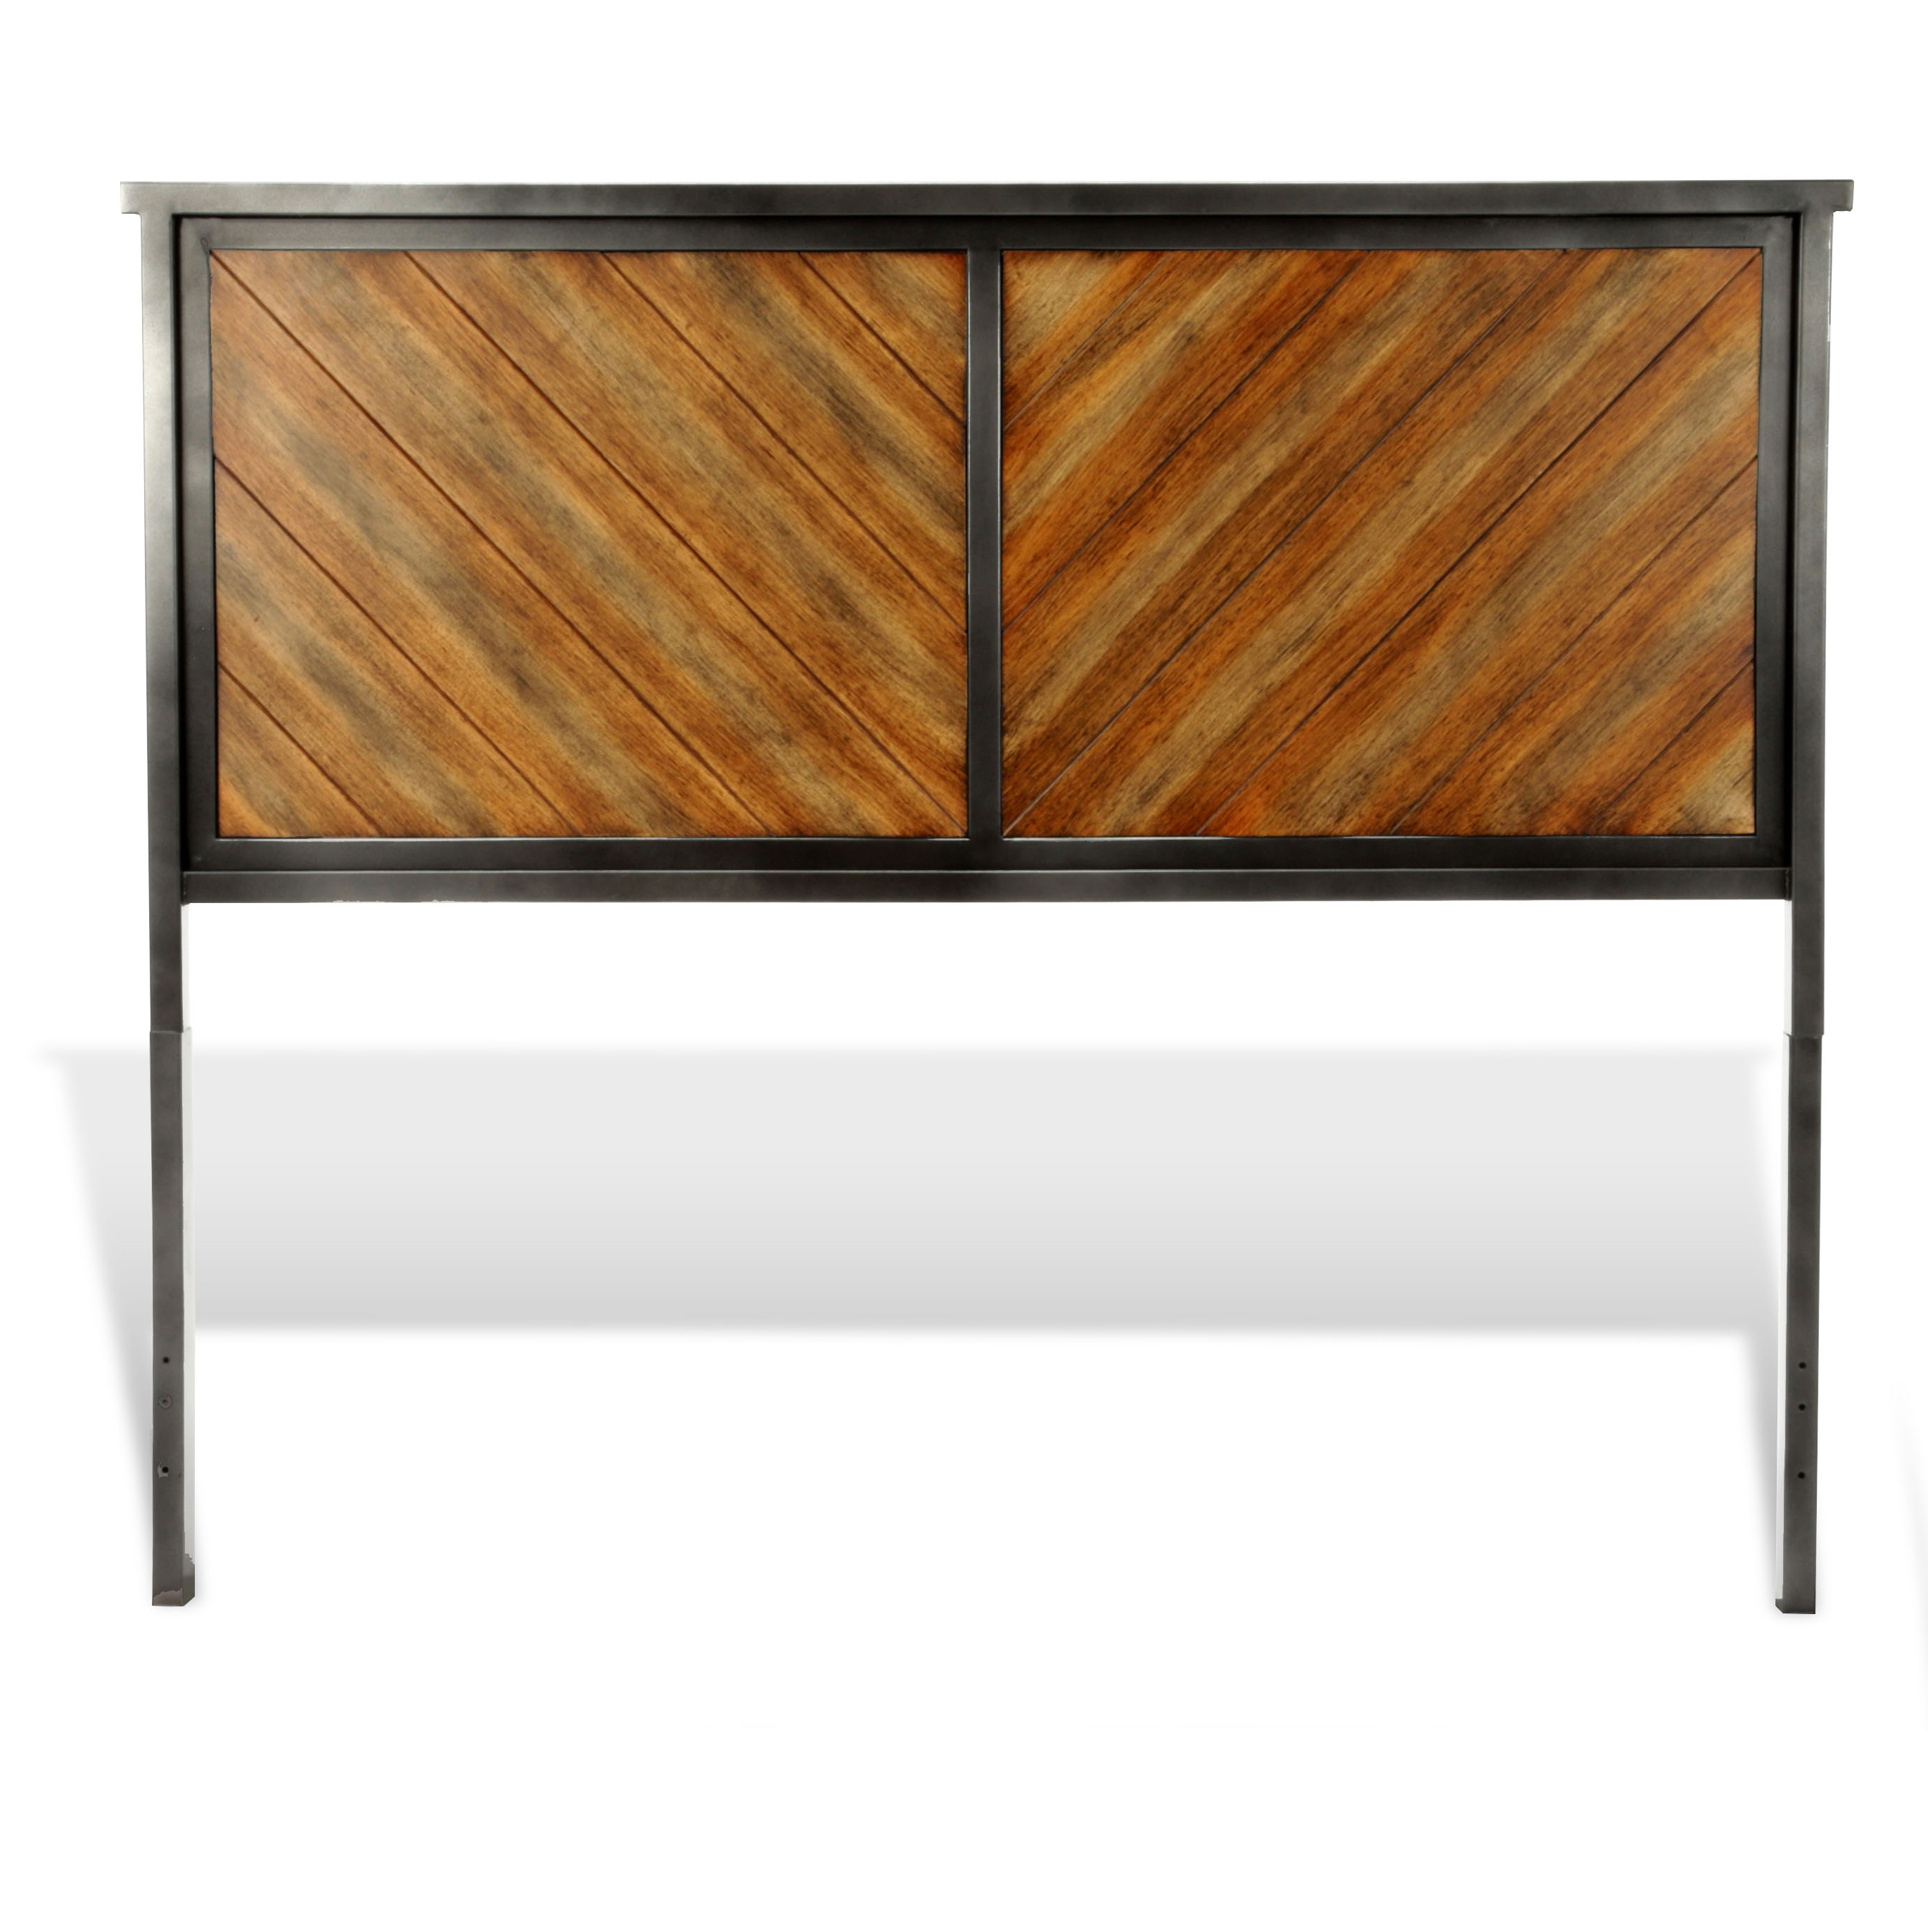 Most Recent Reclaimed Sideboards With Metal Panel Pertaining To B12444Fashion Bed Group Braden Metal Headboard Panel With Reclaimed (Gallery 6 of 20)